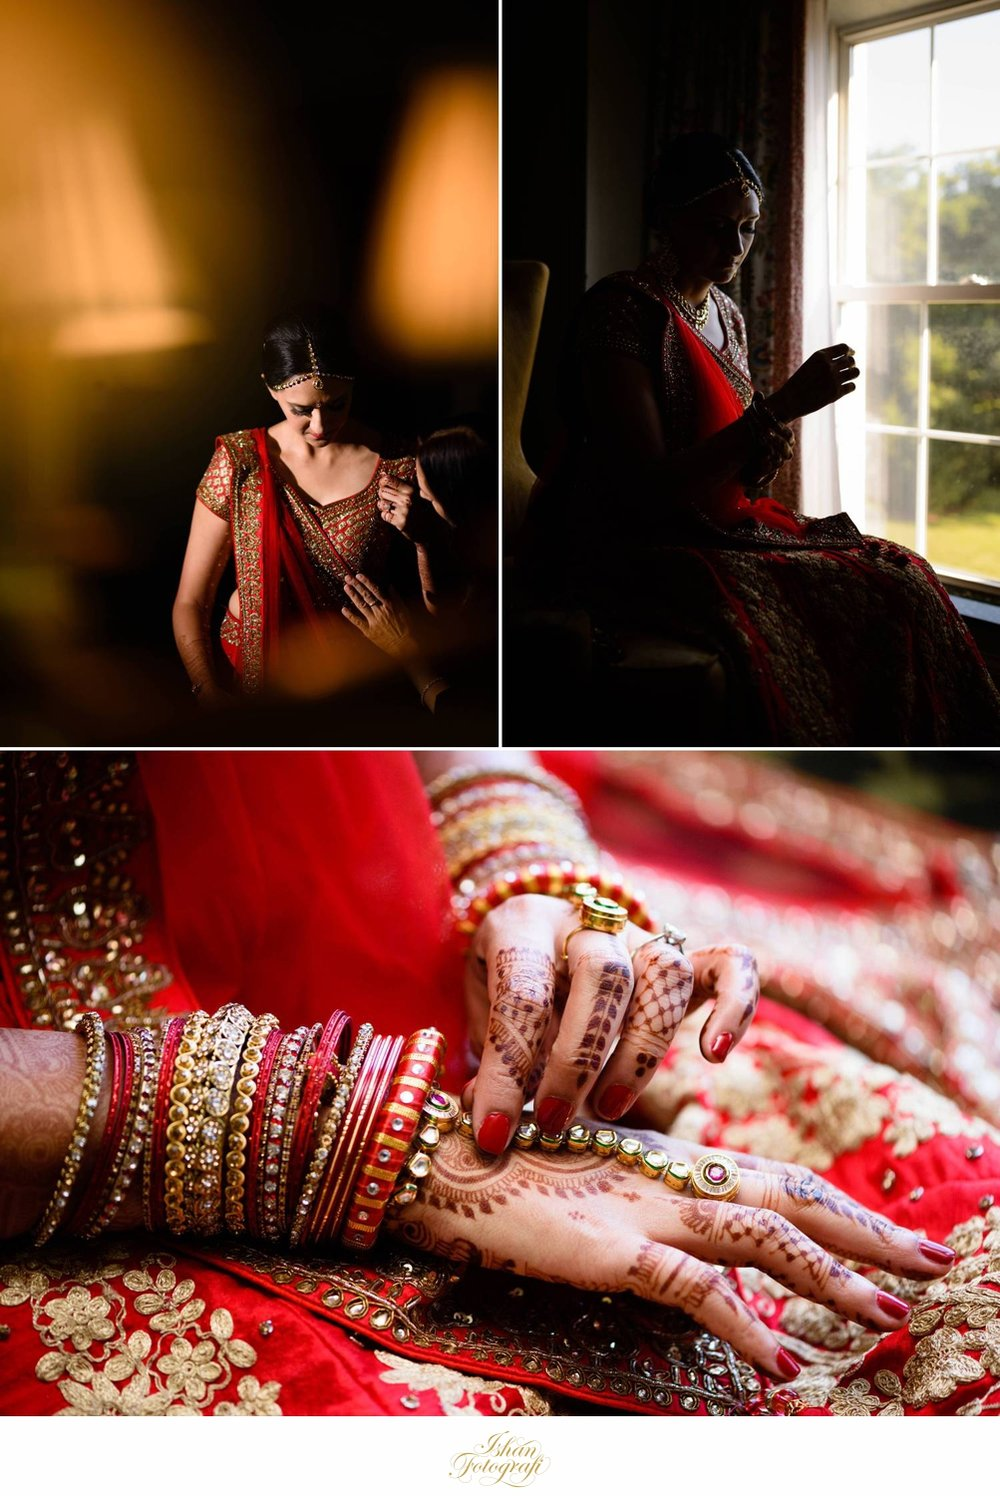 Our bride getting ready. The details, colors, henna, traditional jewelry; we can spend hours on end photographing it.